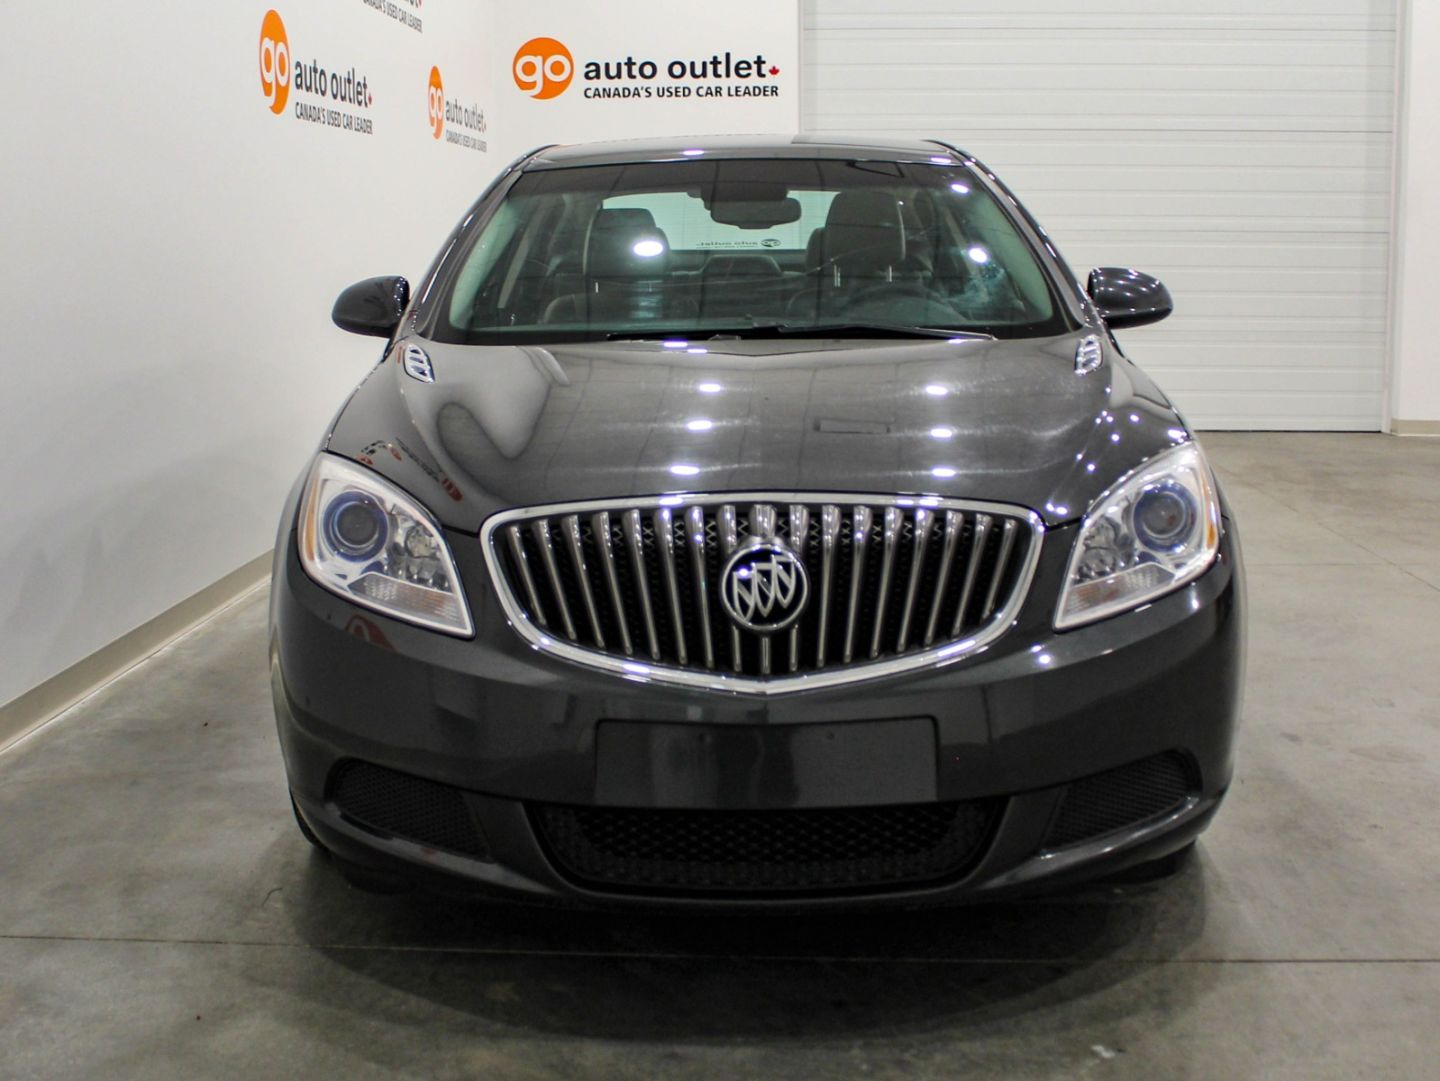 2017 Buick Verano Base for sale in Edmonton, Alberta